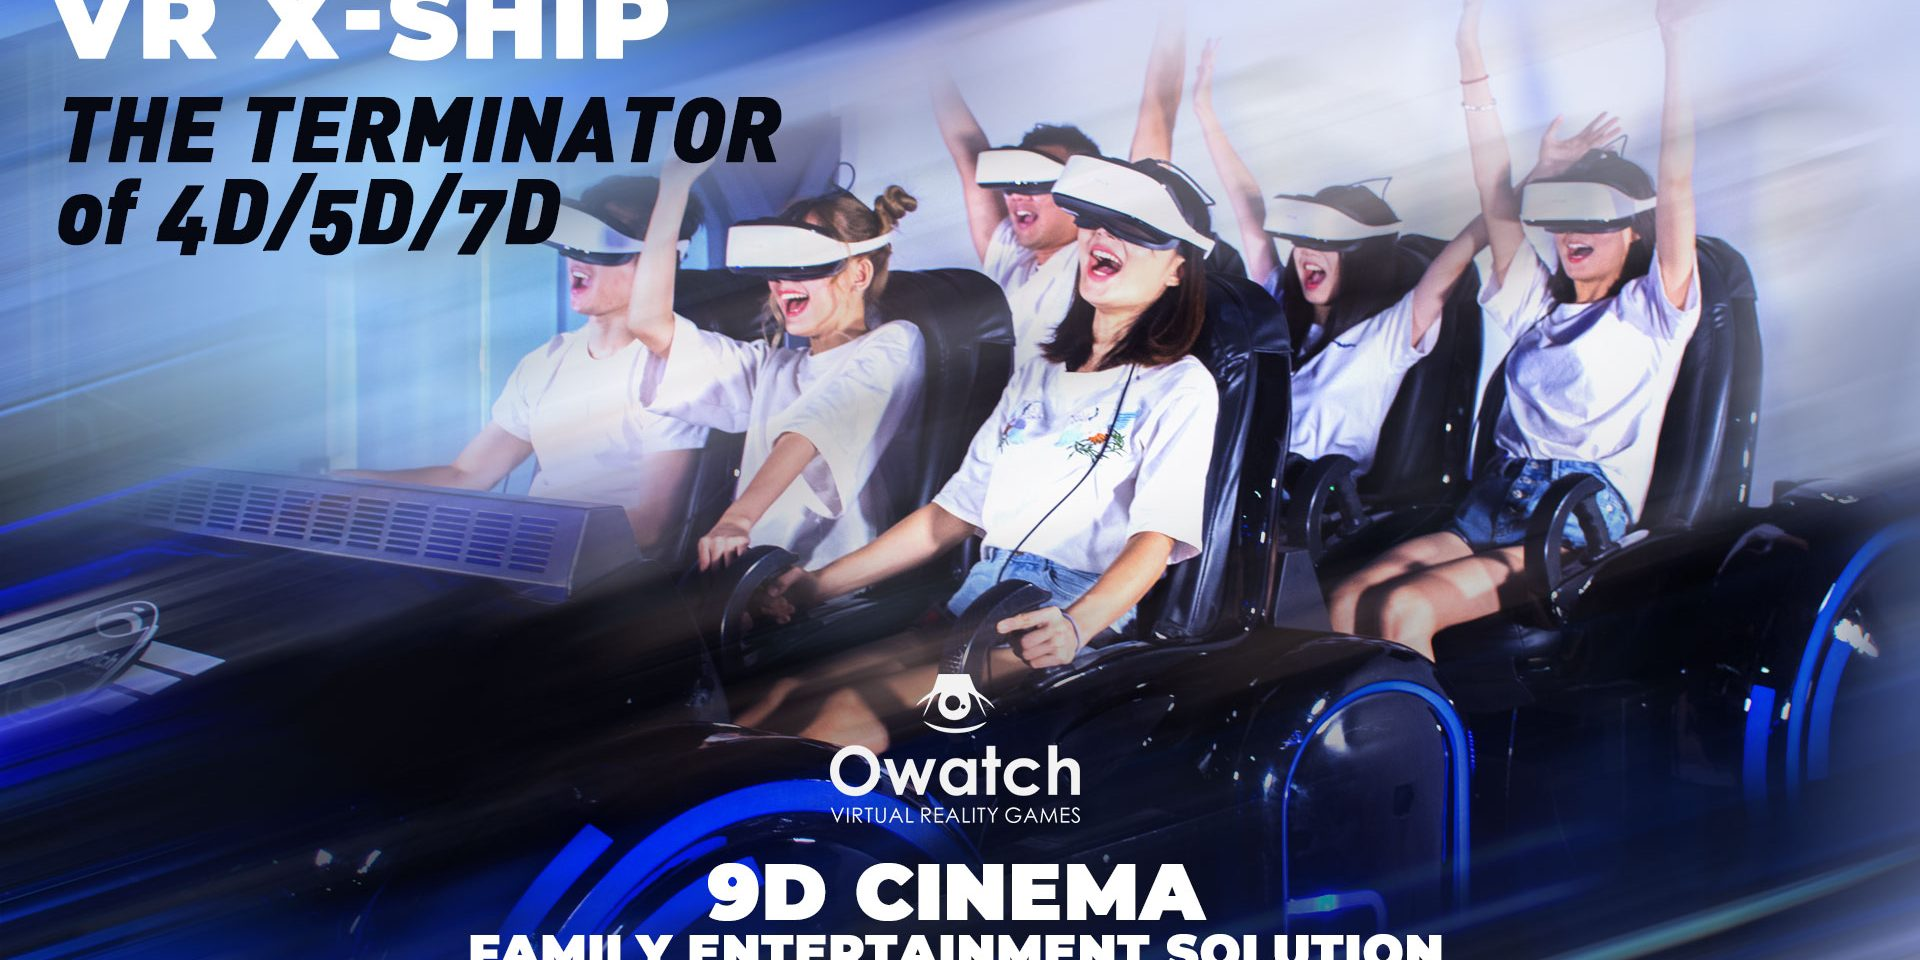 d6314d46f3c VR X-SHIP 6 seats 9d VR Cinema from Owatch  The Terminator of 4D 5D ...